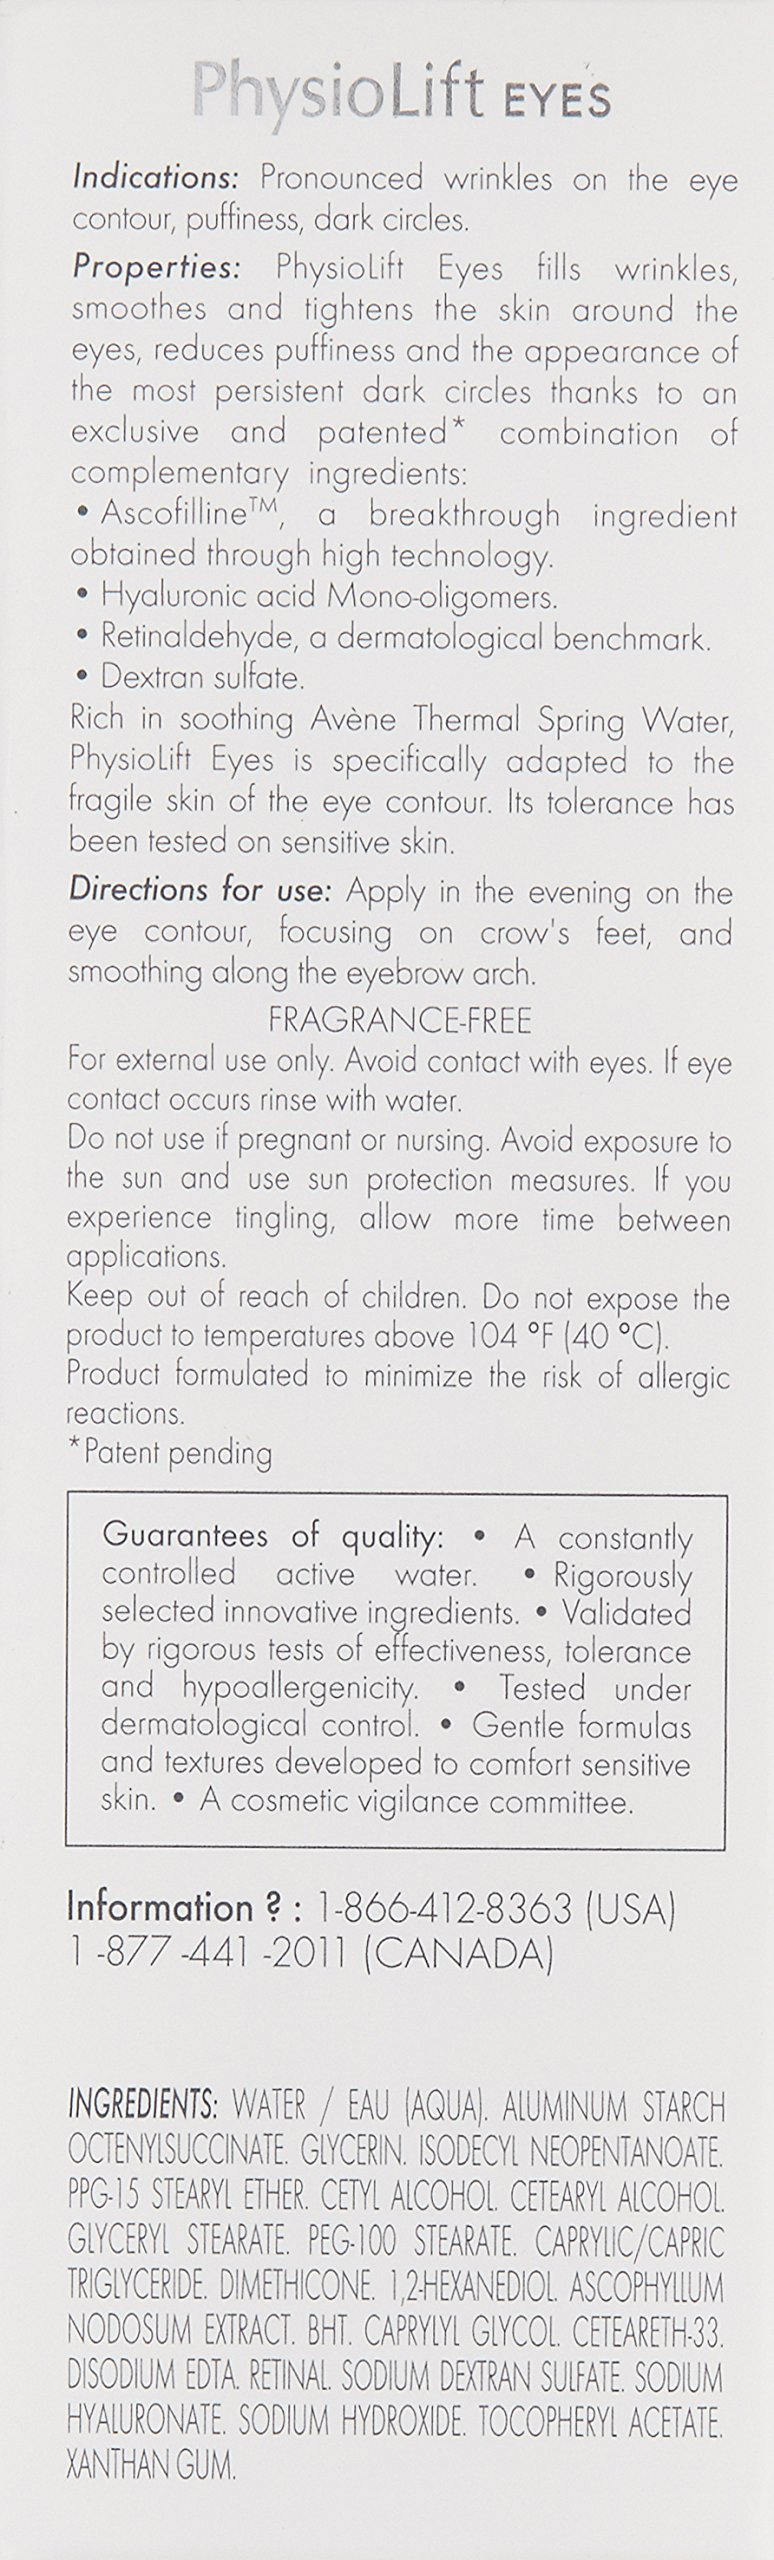 Eau Thermale Avène Physiolift Eyes Wrinkles, Puffiness, Dark Circles Cream, 0.5 fl. oz. by Eau Thermale Avène (Image #8)